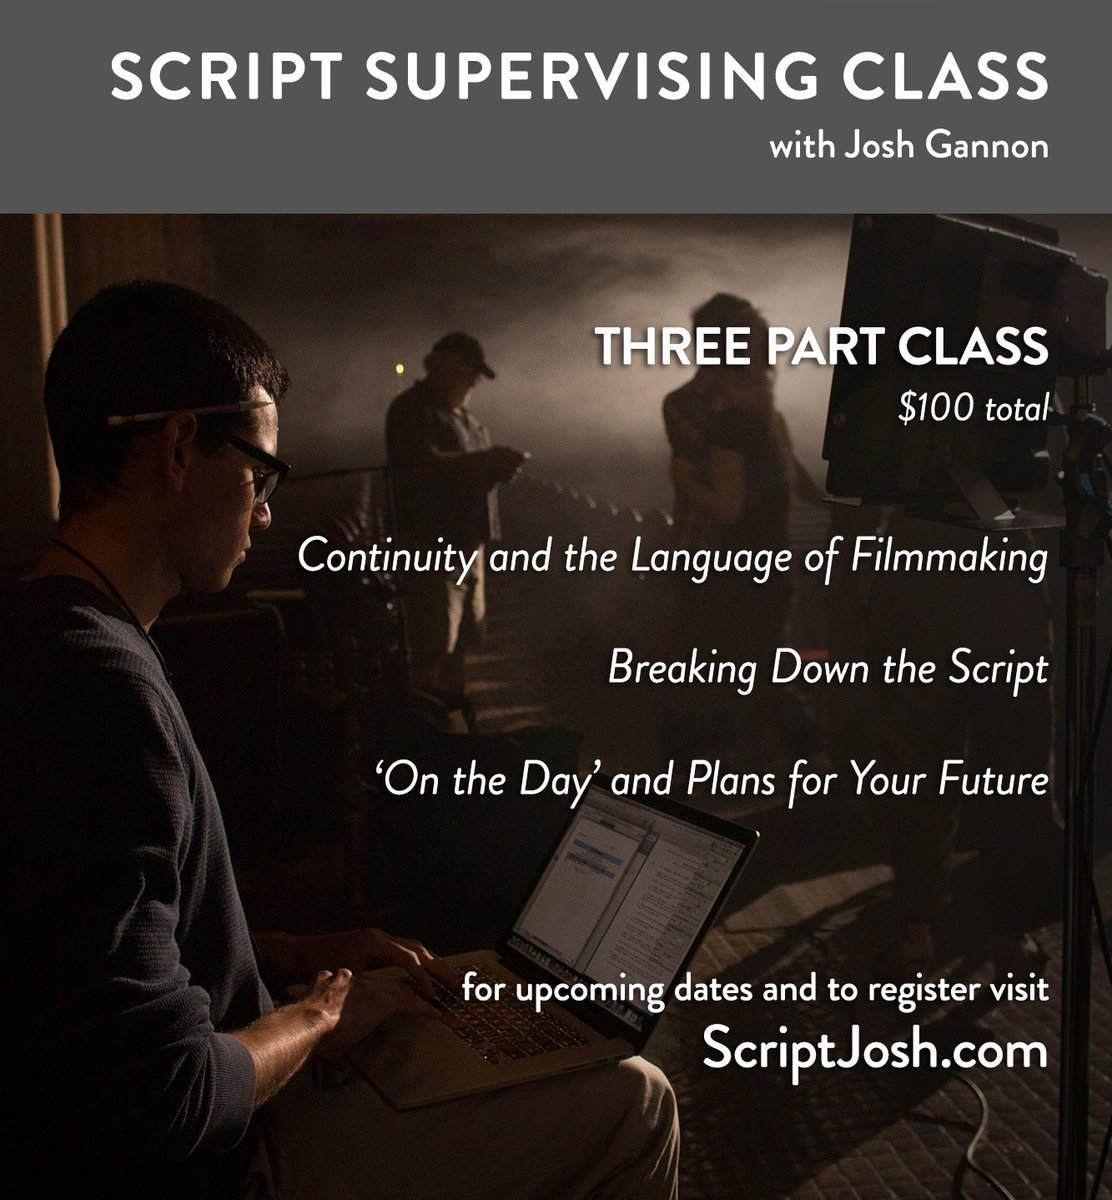 DATES ADDED! Share if you can. Offering 3 courses this month on Script Supervising, if u or someone u know is interested. $100 total.  REGISTER at http://www.scriptjosh.com #scriptsupervisor #production #crew #movingmaking #zoom #webinar #education #filmschoolpic.twitter.com/75iTHwb4FV